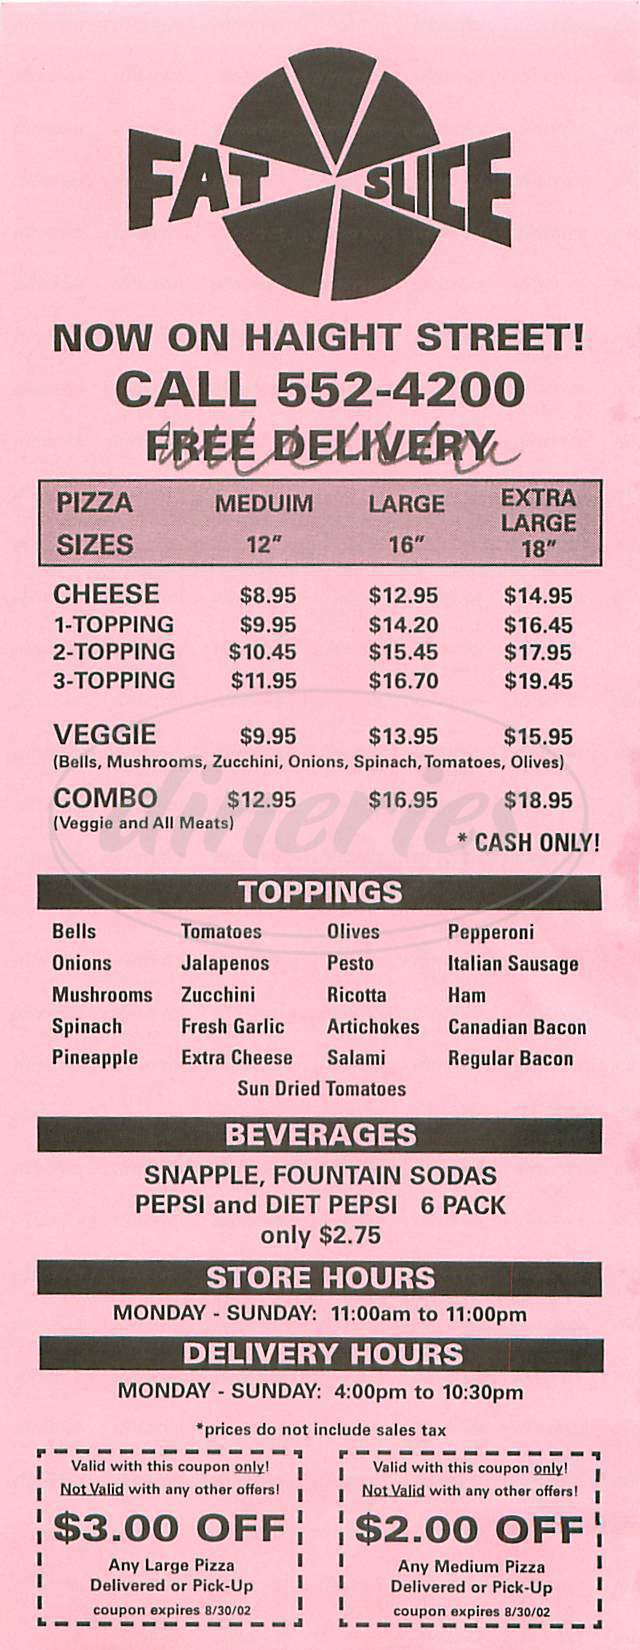 menu for Fat Slice